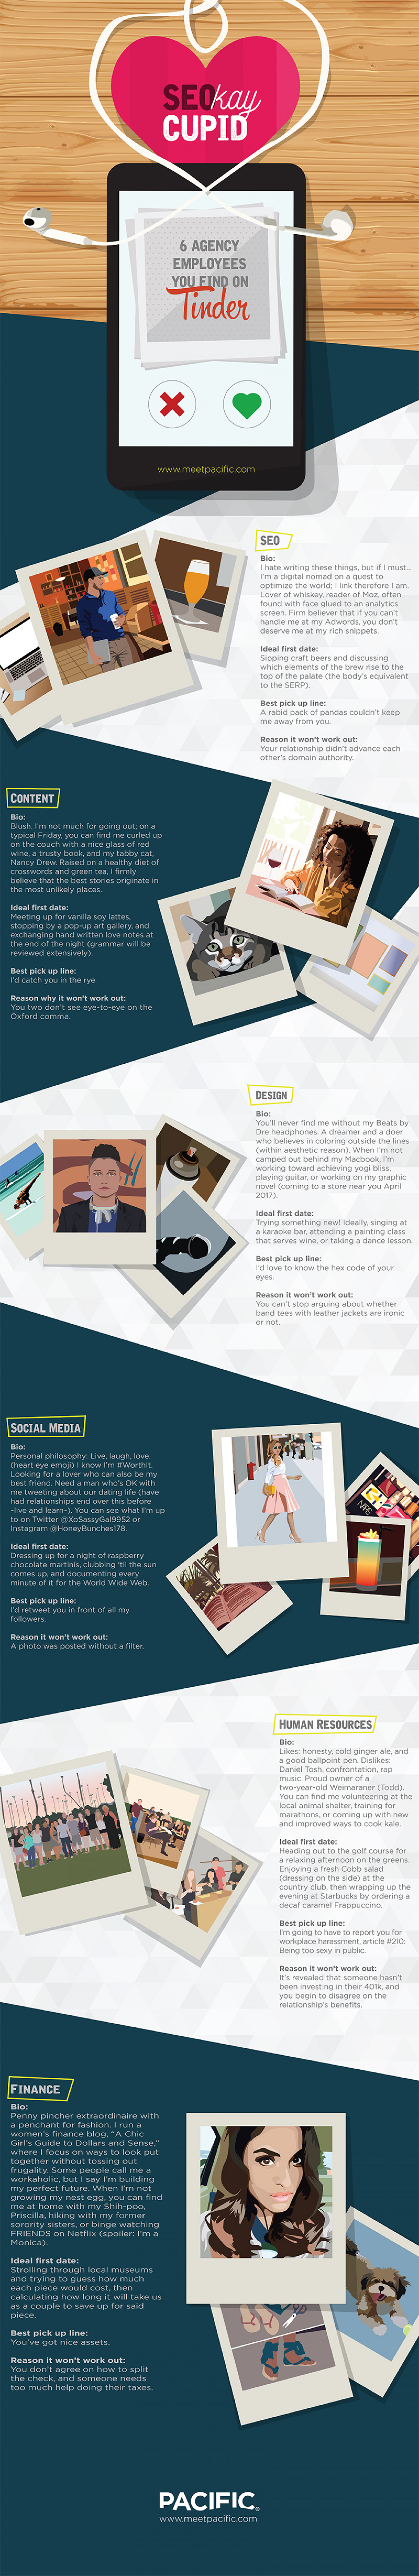 SEOkay Cupid: The 6 Agency Employees You Find on Tinder Infographic